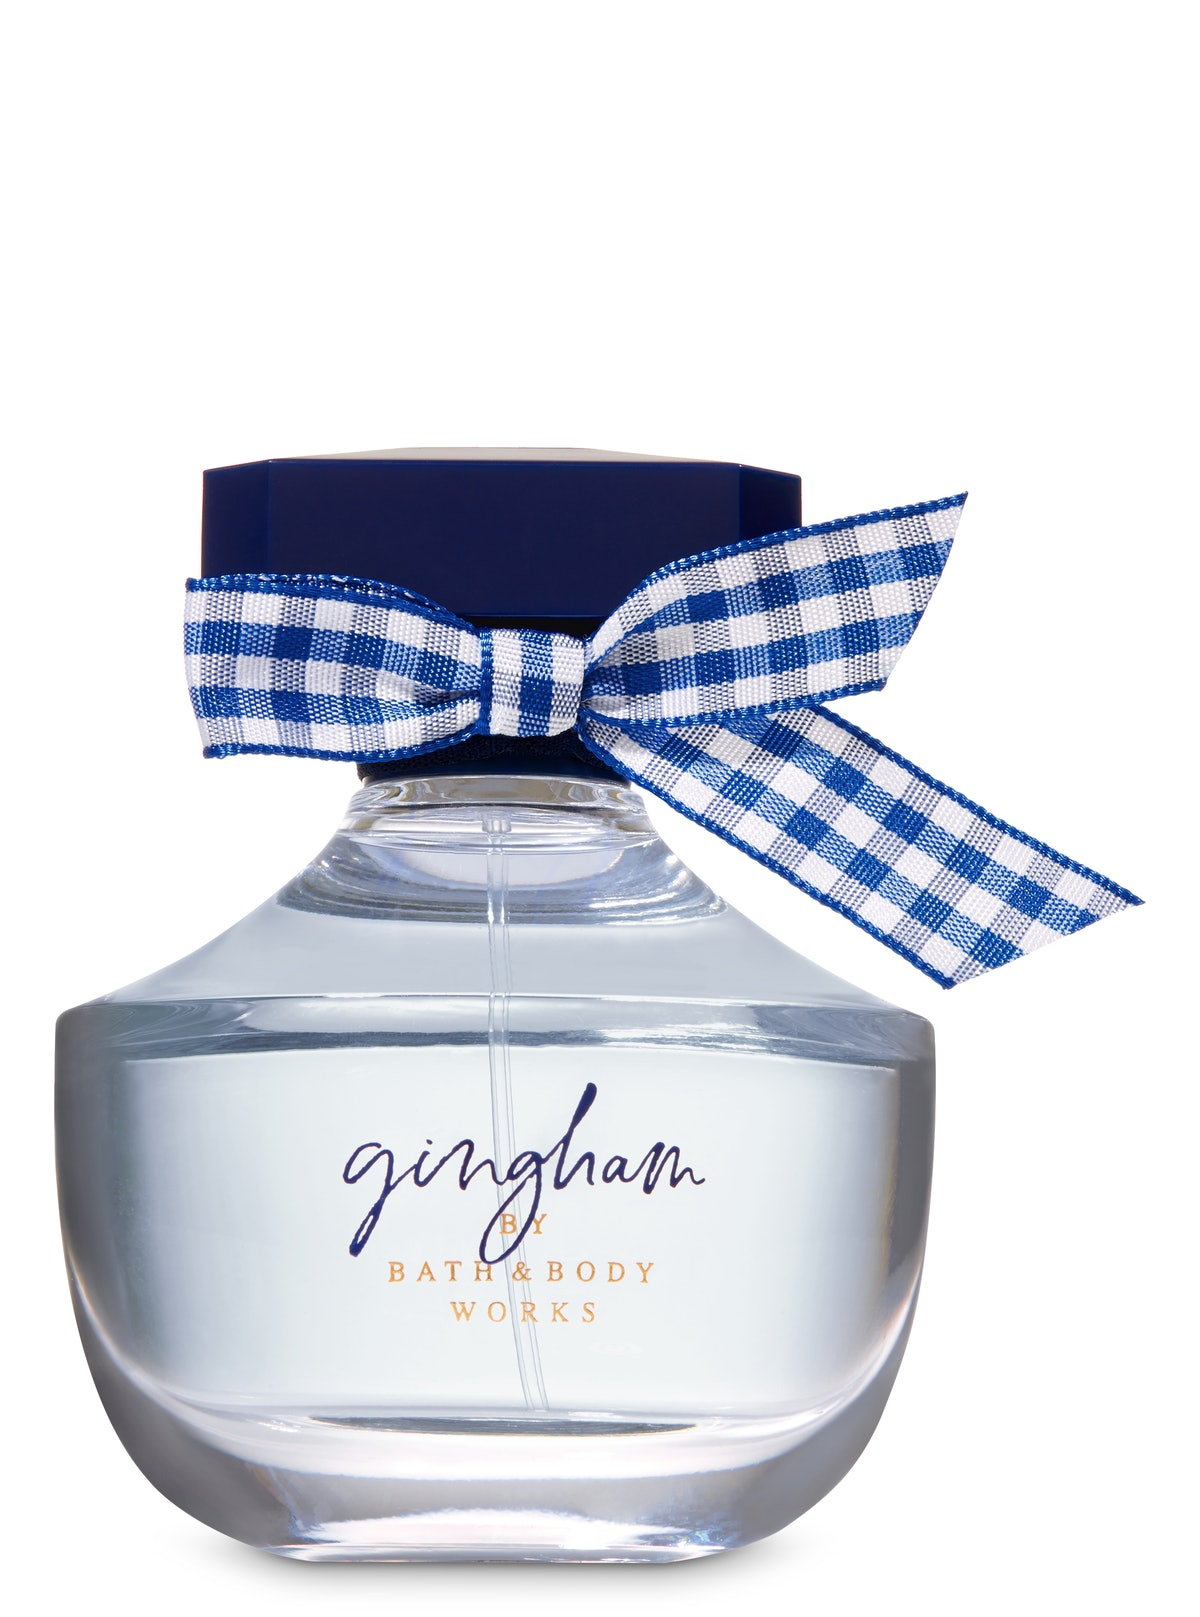 Bath & Body Works' New Gingham Fragrance Will Make You Smell Great, Without Being Overpowering